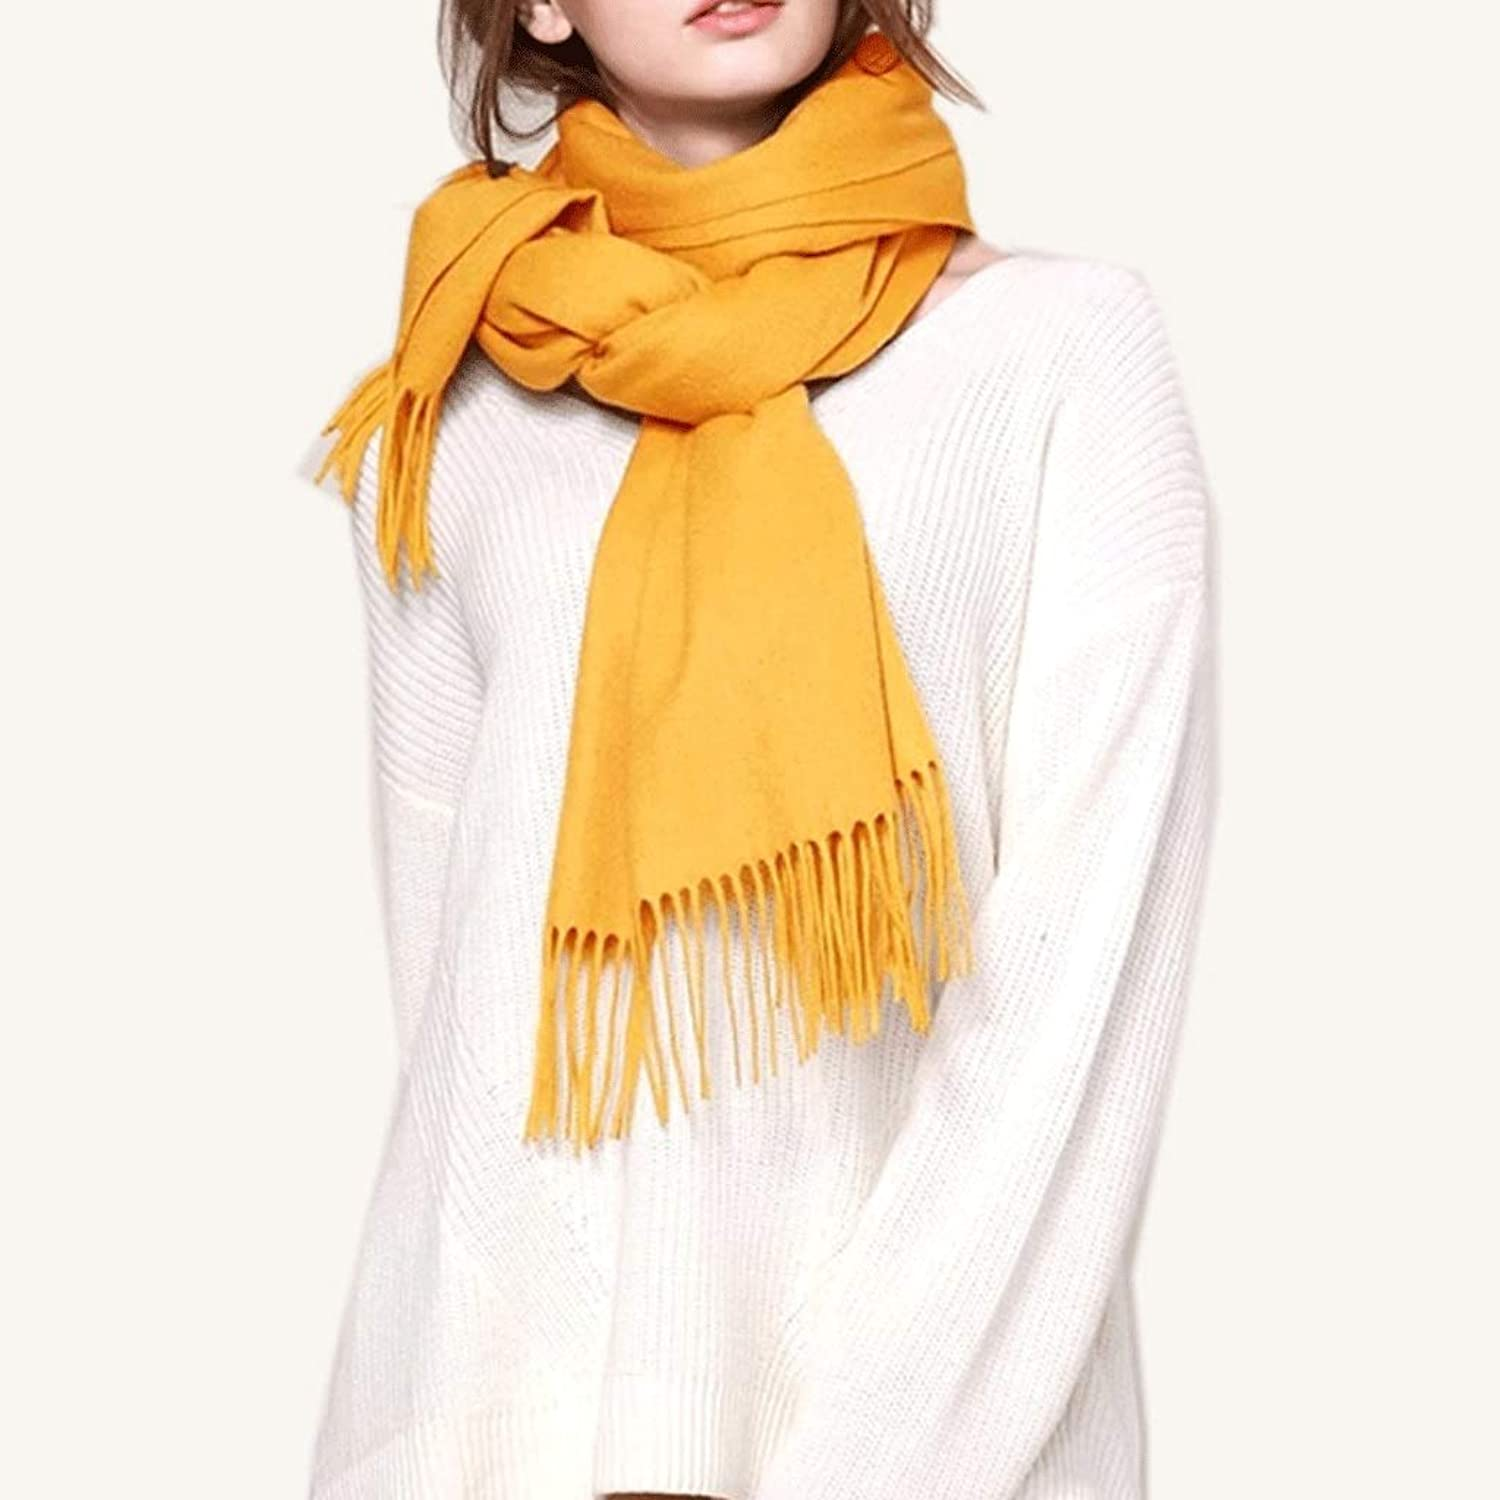 WXL Keep Warm Scarf Winter Wrap Woman 200cm×35cm Thicken Soft Shawl V (color   Yellow)